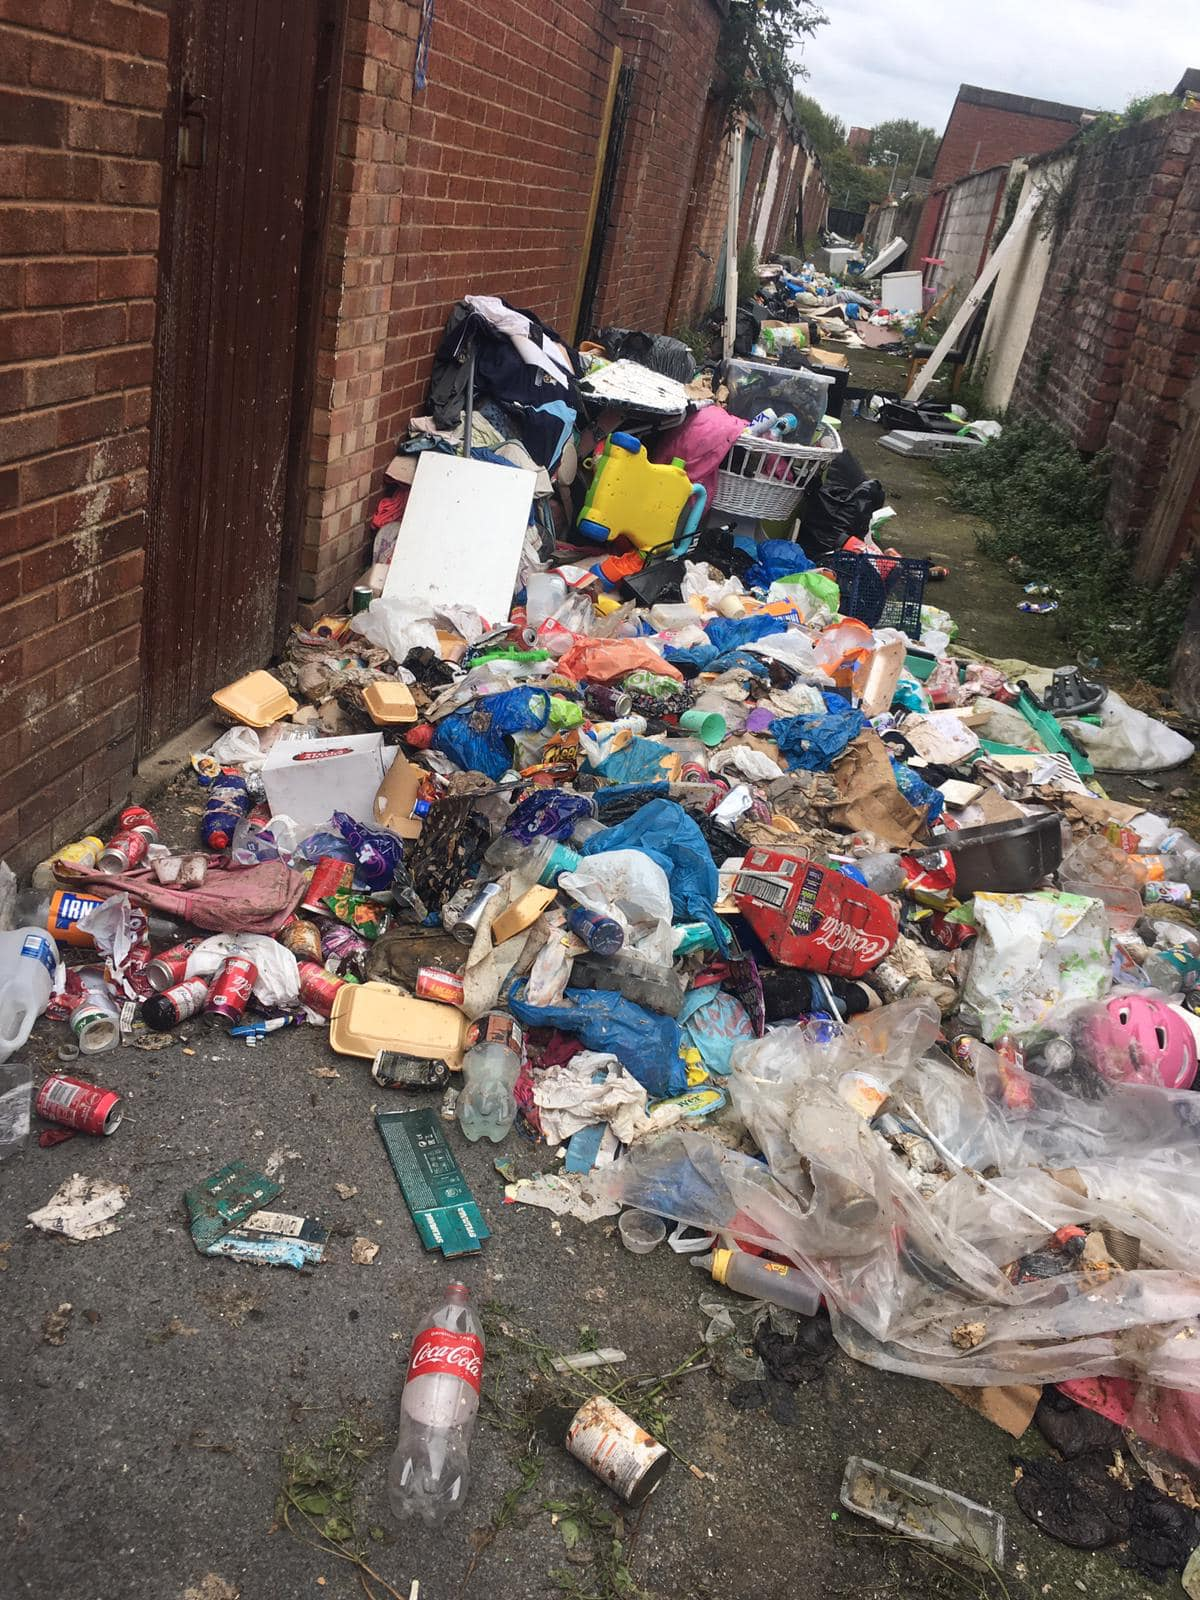 Council workers who cleaned up fly-tipping spot verbally abused